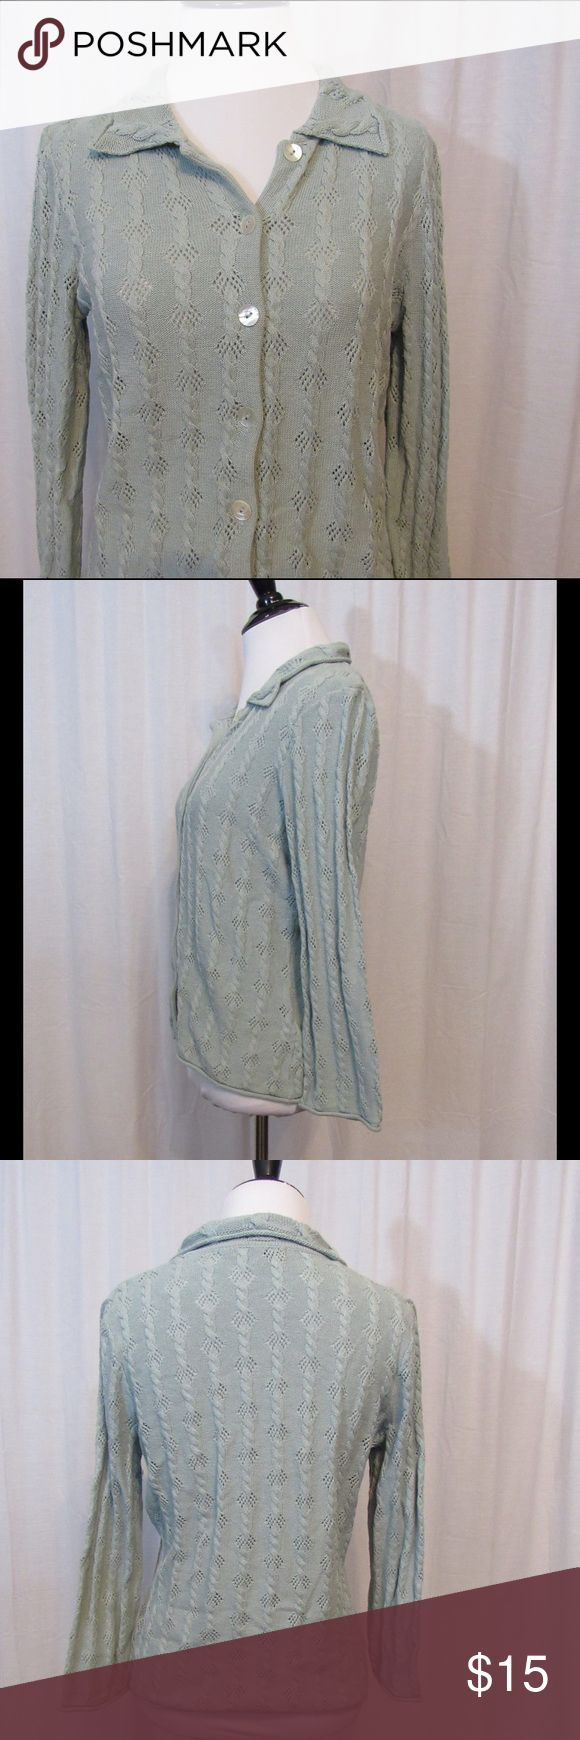 "Boden Light Blue Silk Blend Cardigan Top 10 -Light Weight - 3/4 sleeves  Brand: Boden Size: 10 Color: Blue Material: 55% Silk 45% Cotton Care Instructions: Hand Wash  Bust: 38"" Sleeves: 19"" Length: 23""  Buy more save more! Bundle discount! No trades.   All clothing is in excellent used condition. All clothes have been inspected and unless otherwise noted have no rips, holes or stains.   Cont: P22 Boden Tops"